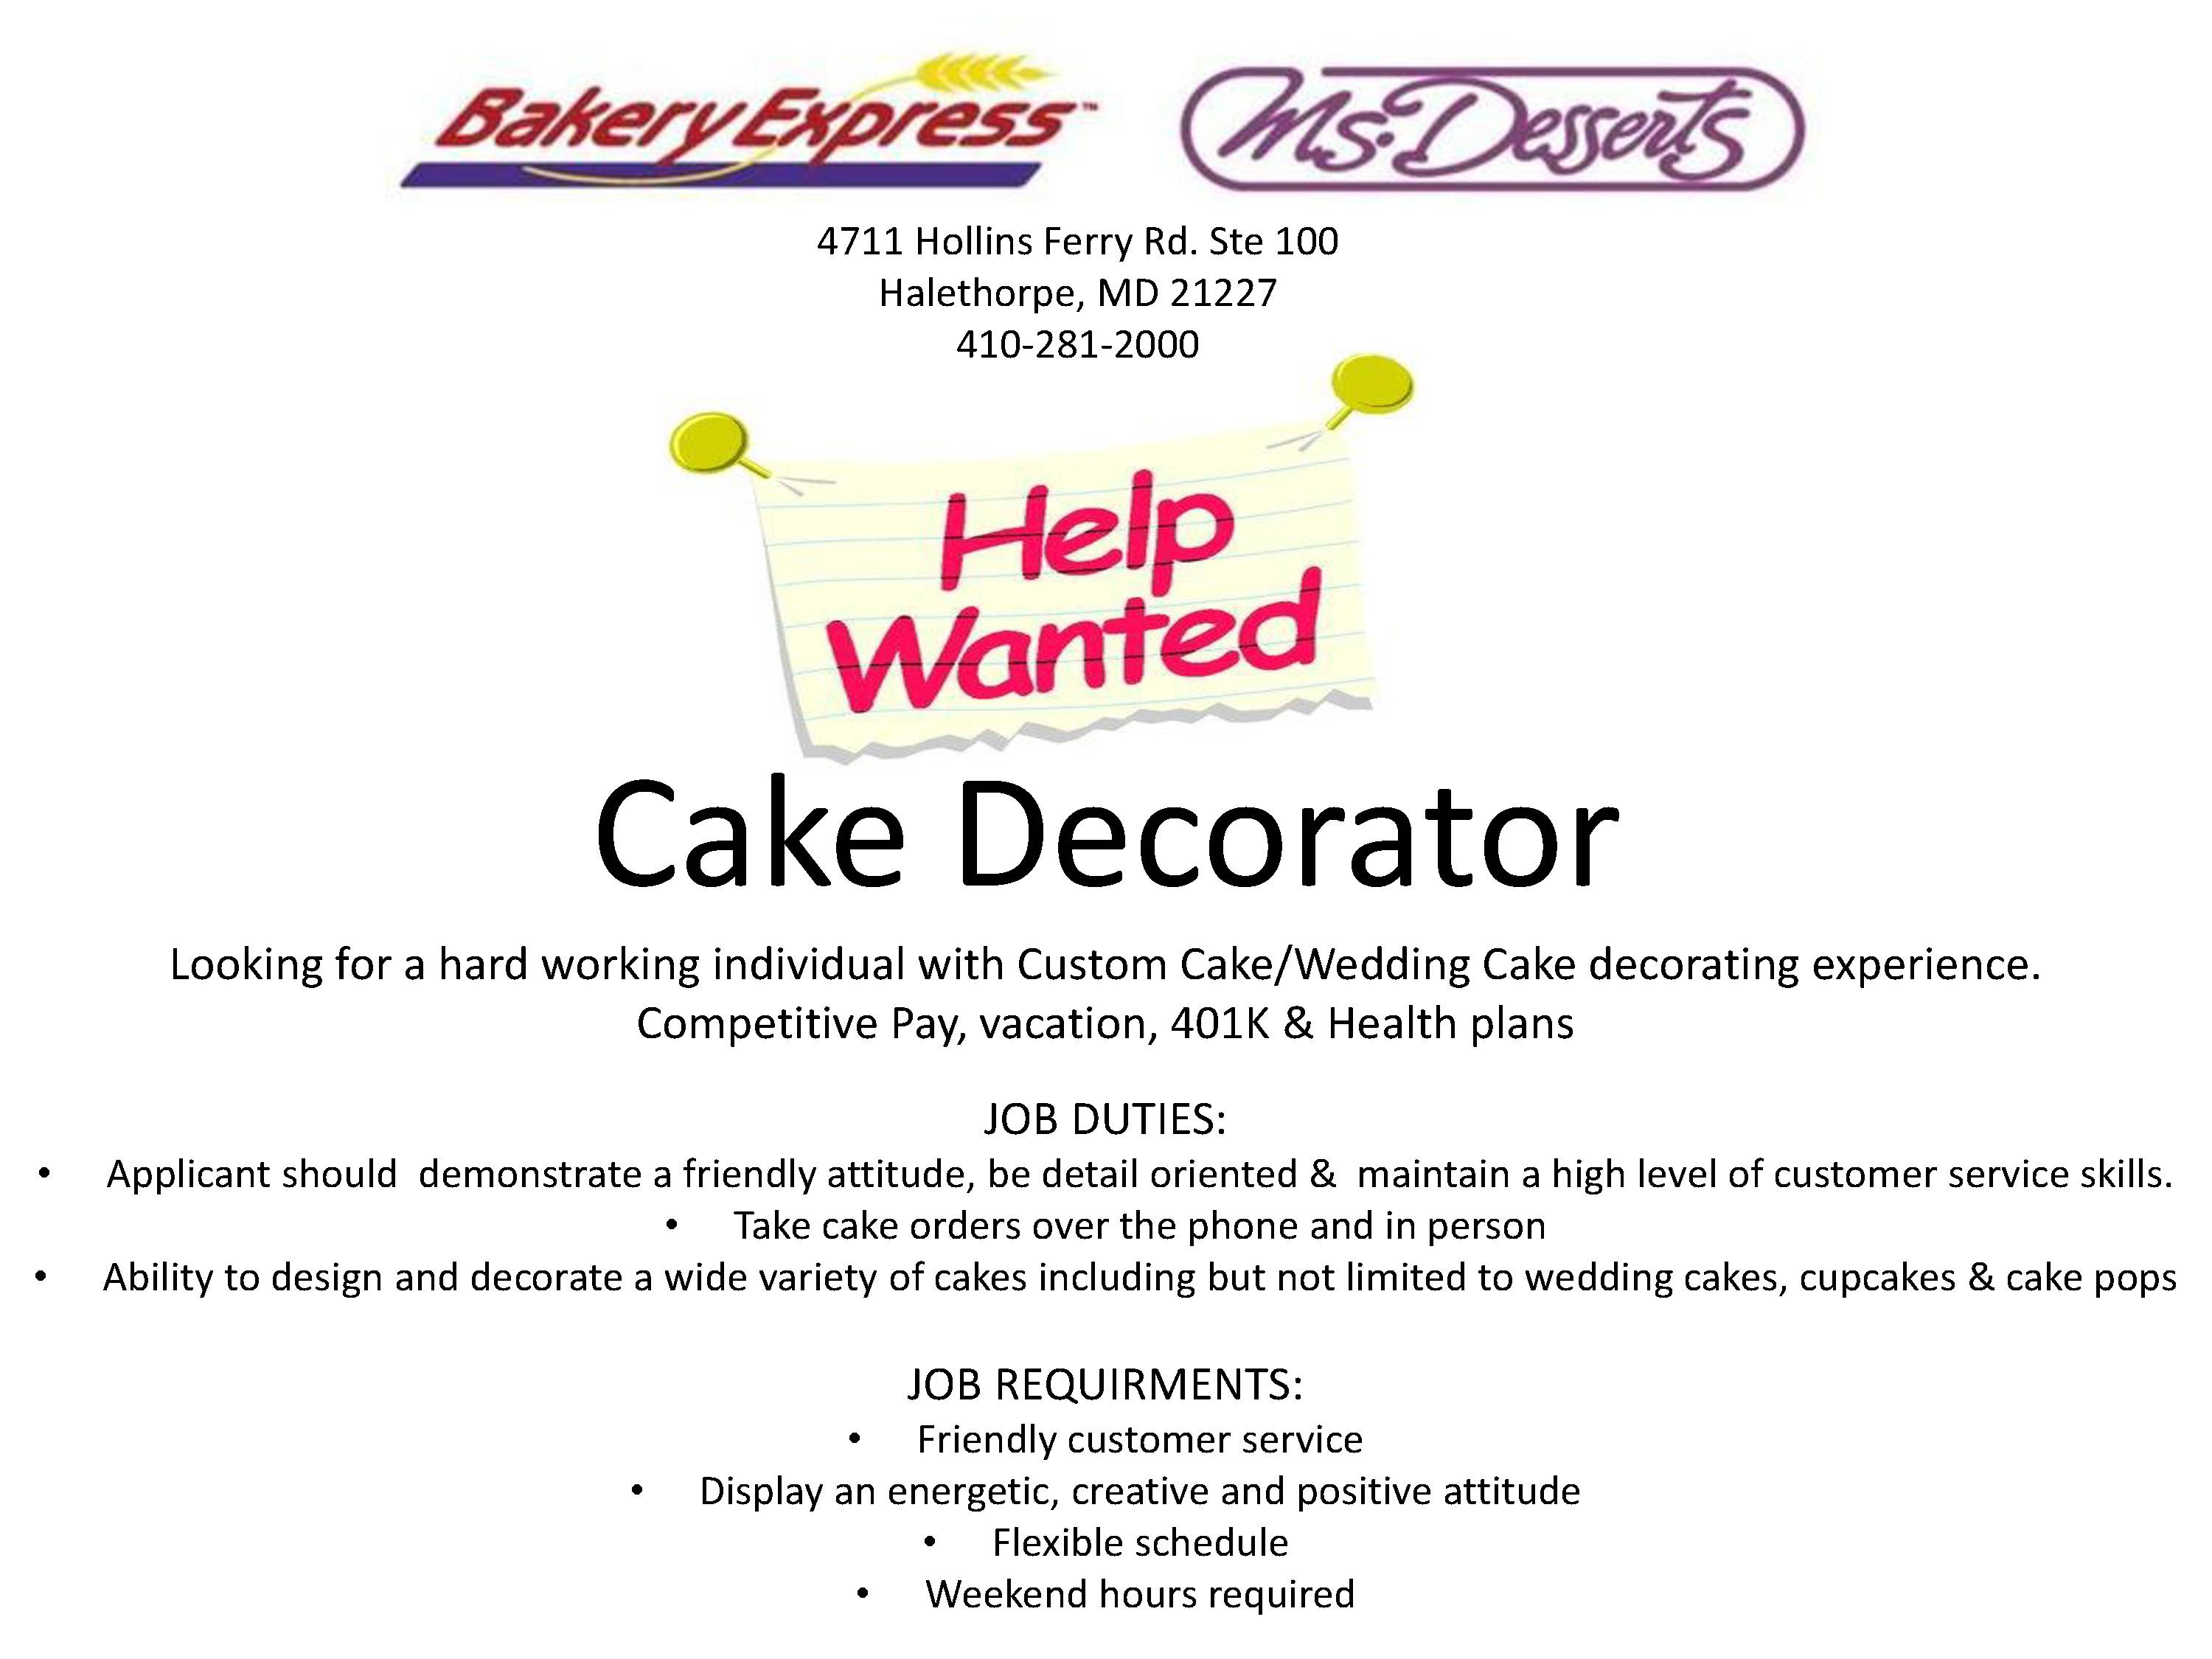 Cake decorator job description flisol home help wanted cake decorator 2017 junglespirit Images